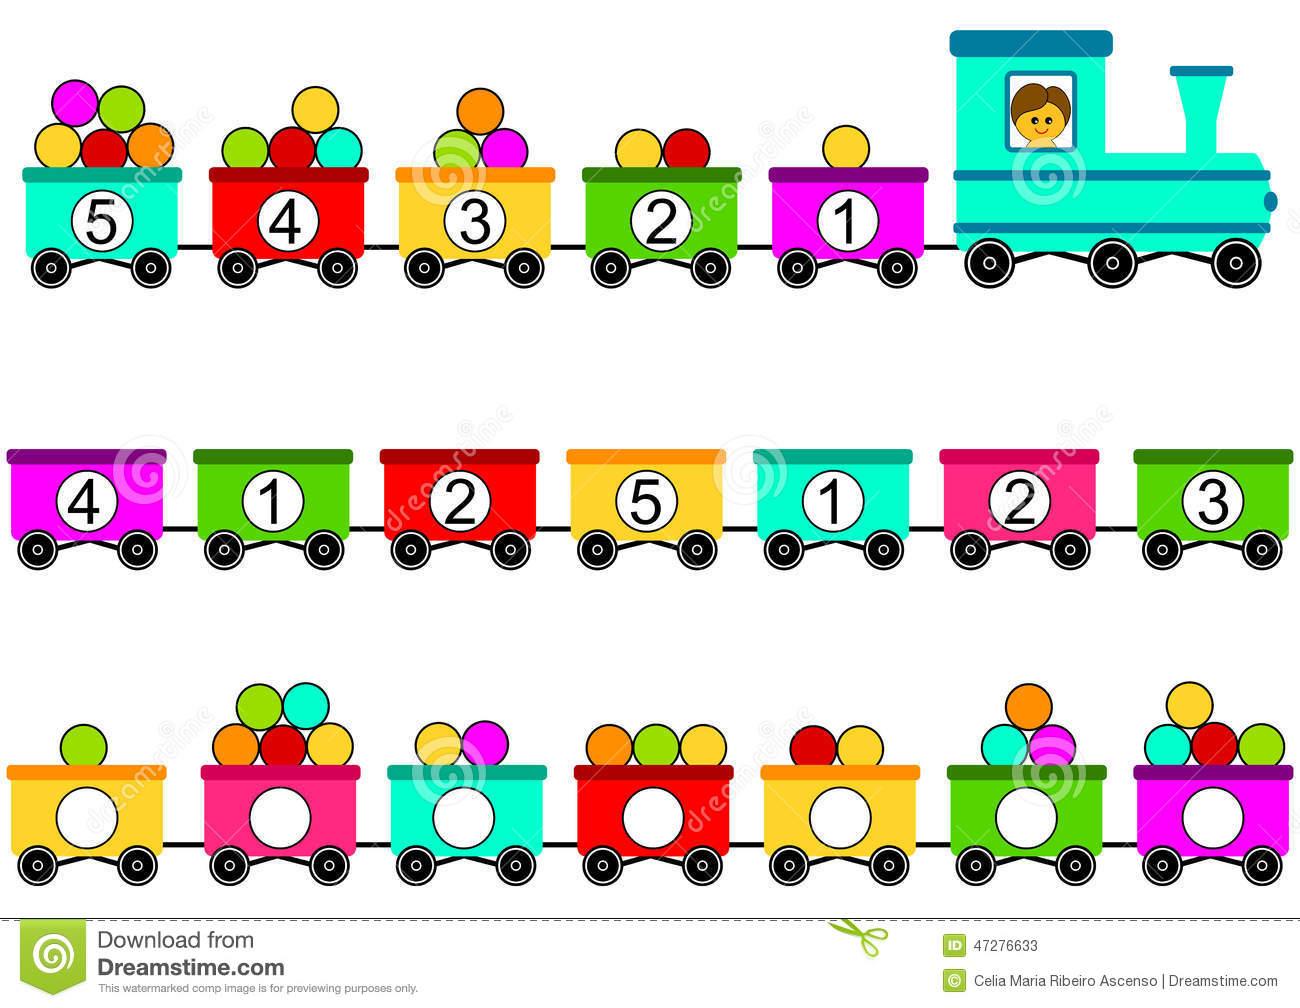 Maths De Jouet De Train Comptant Le Jeu Illustration Stock